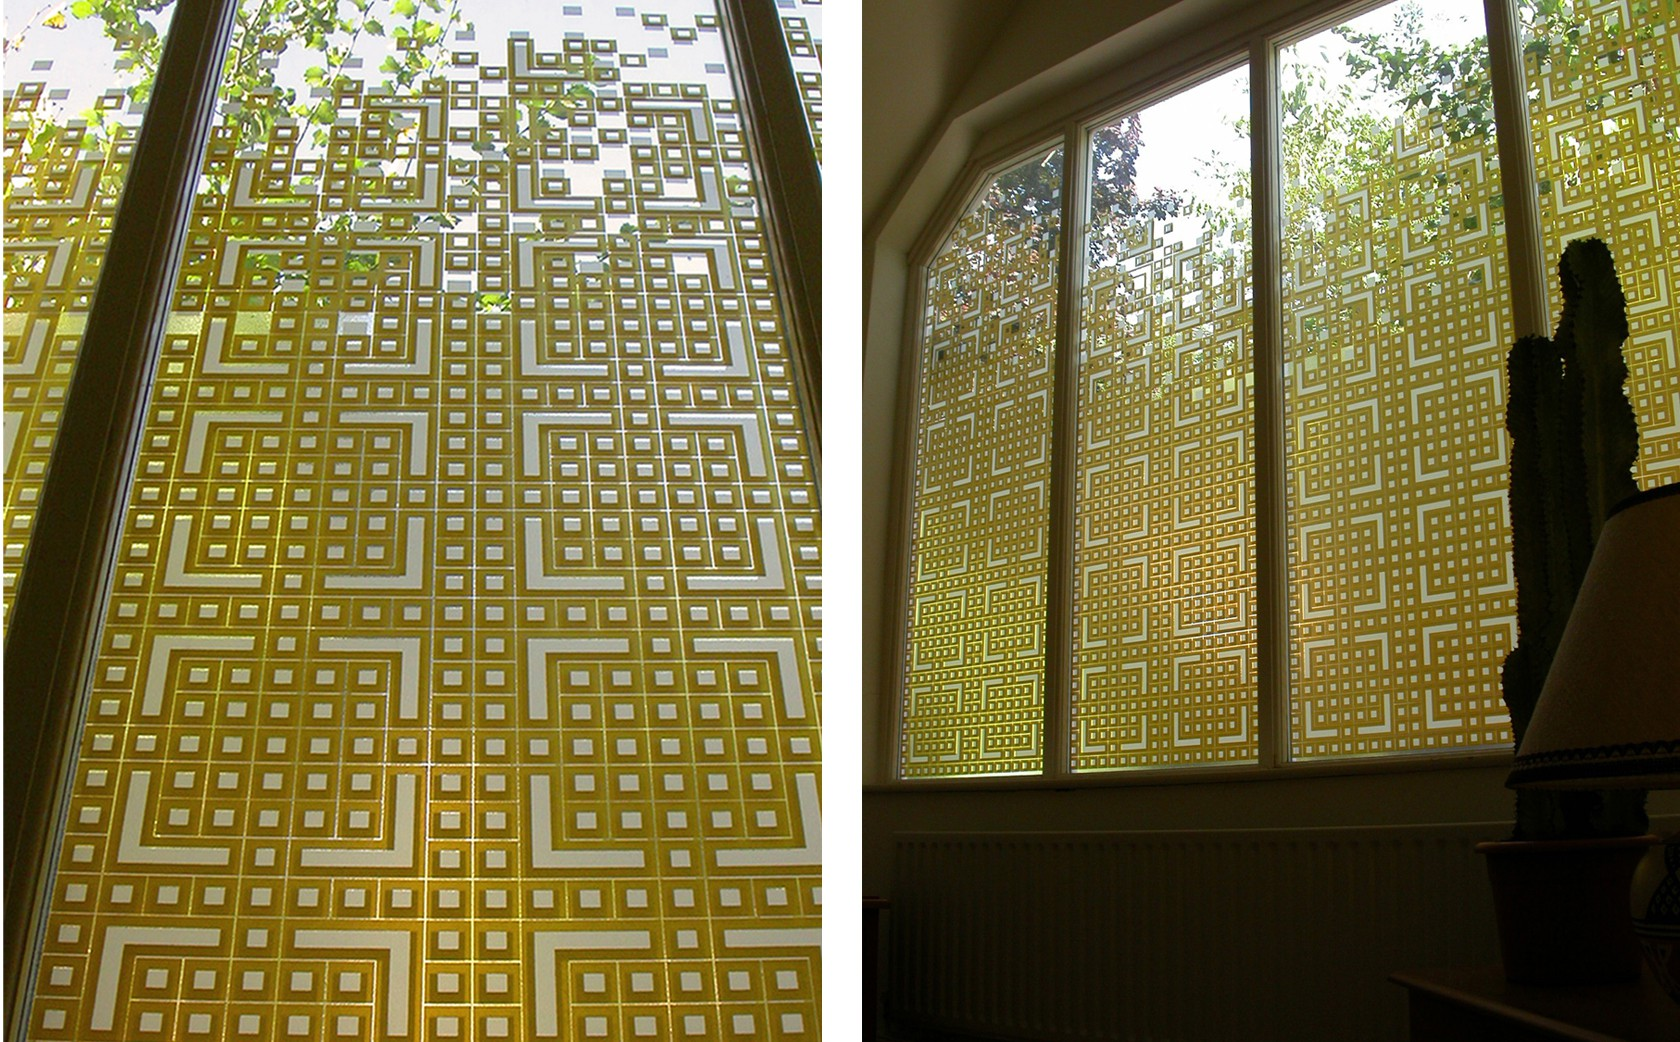 'Chinese Fretwork' inspired these designer glass screens for a West London Studio where privacy issues and natural light control were key functional factors